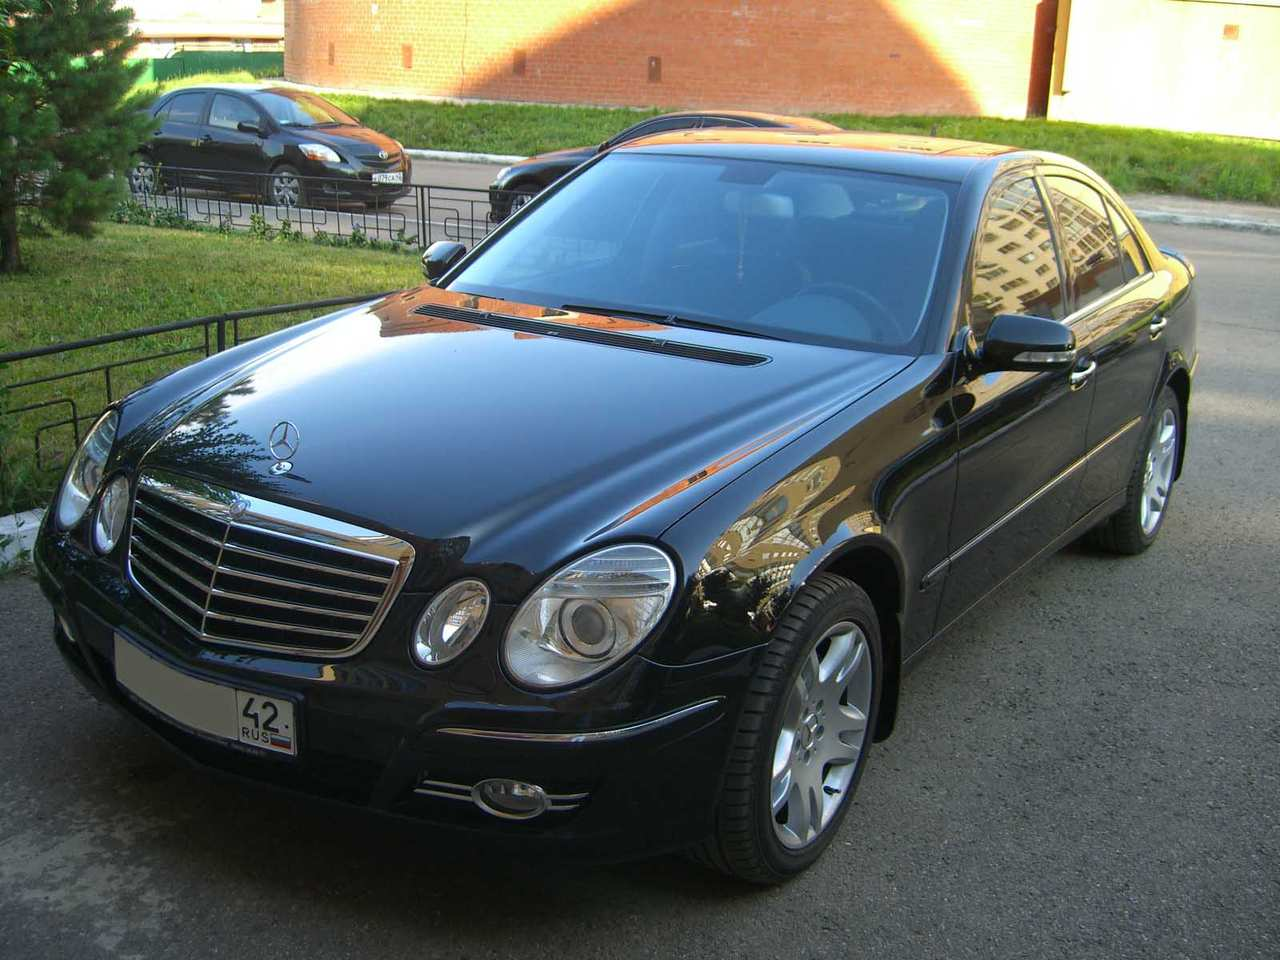 used 2007 mercedes benz e class photos 3495cc gasoline. Black Bedroom Furniture Sets. Home Design Ideas